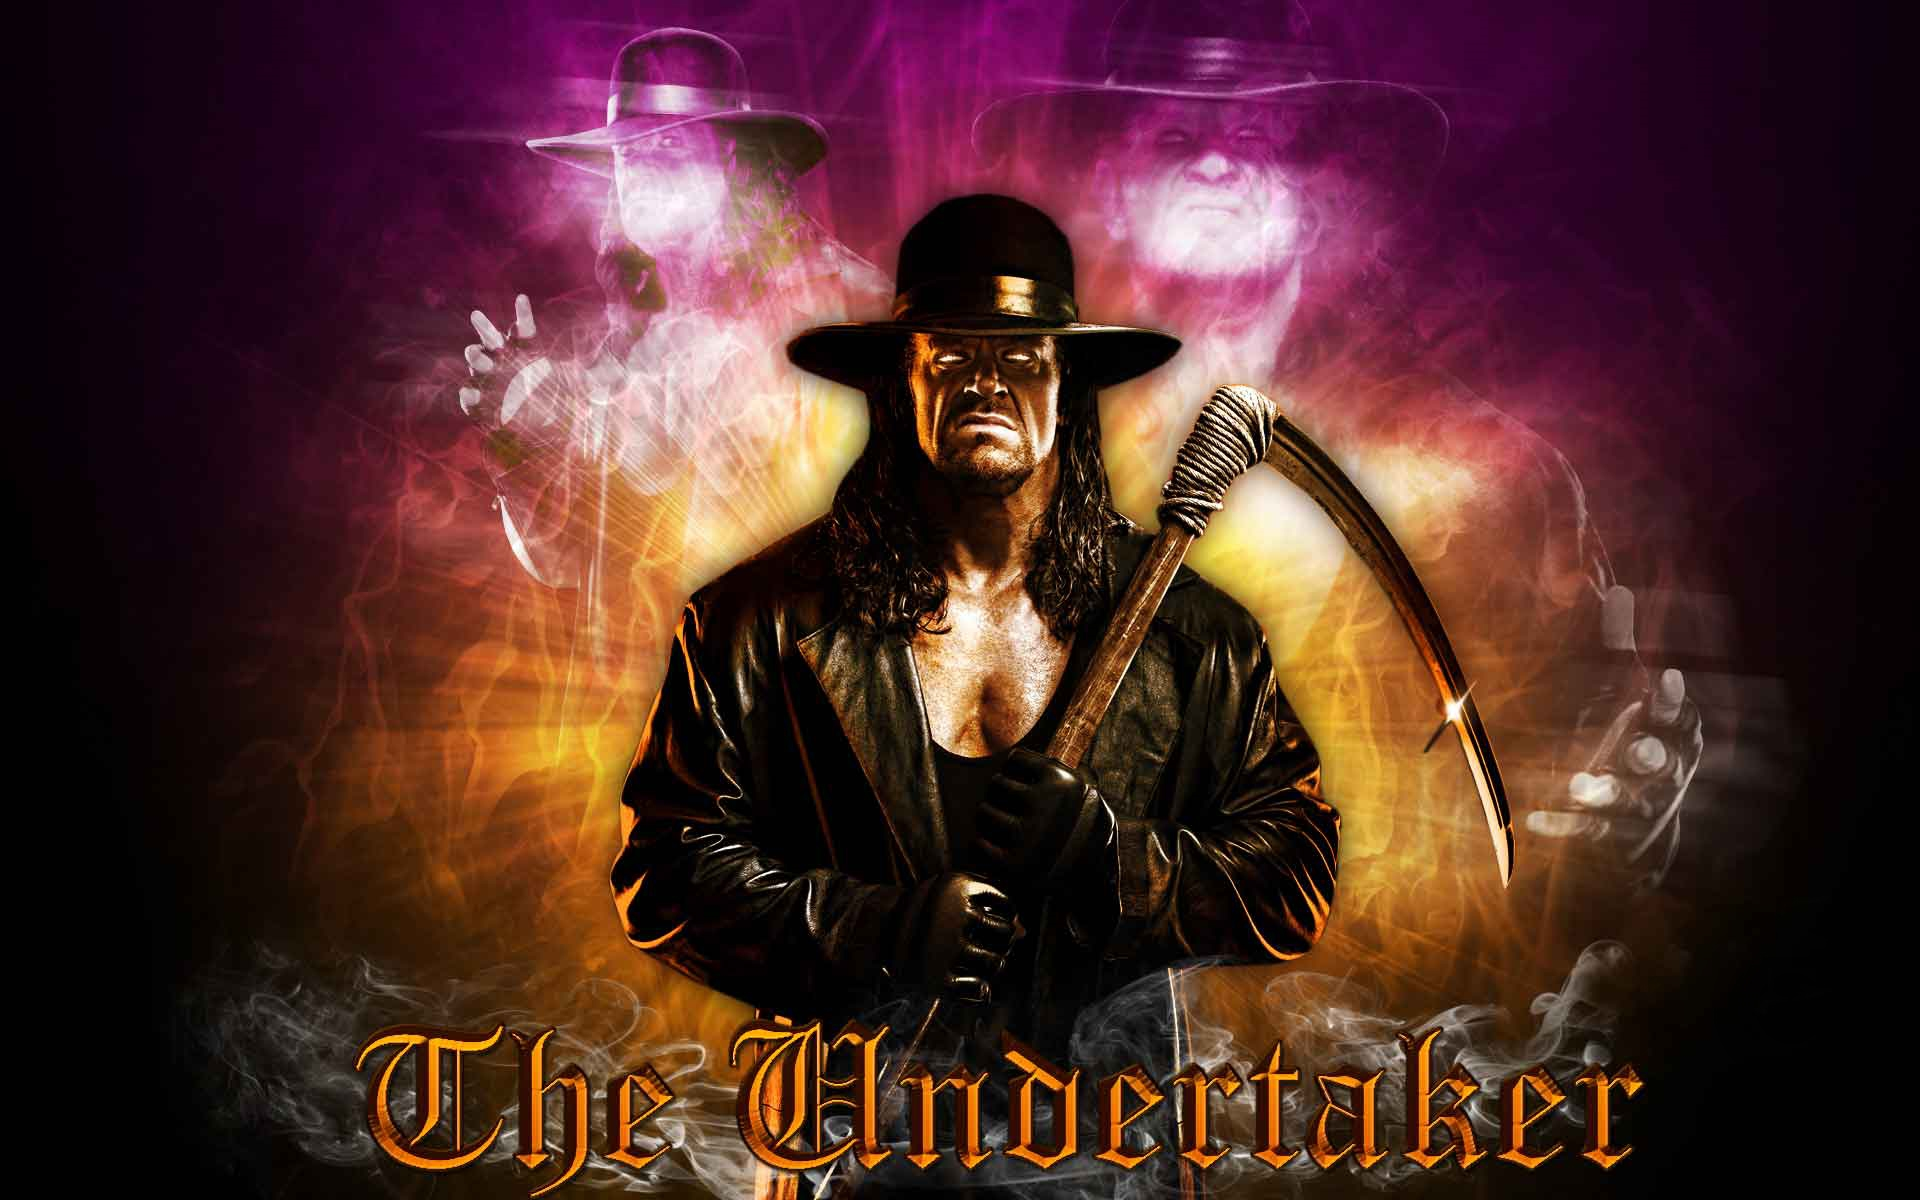 Free 3d Hulk Wallpaper Undertaker Wallpapers Page 3